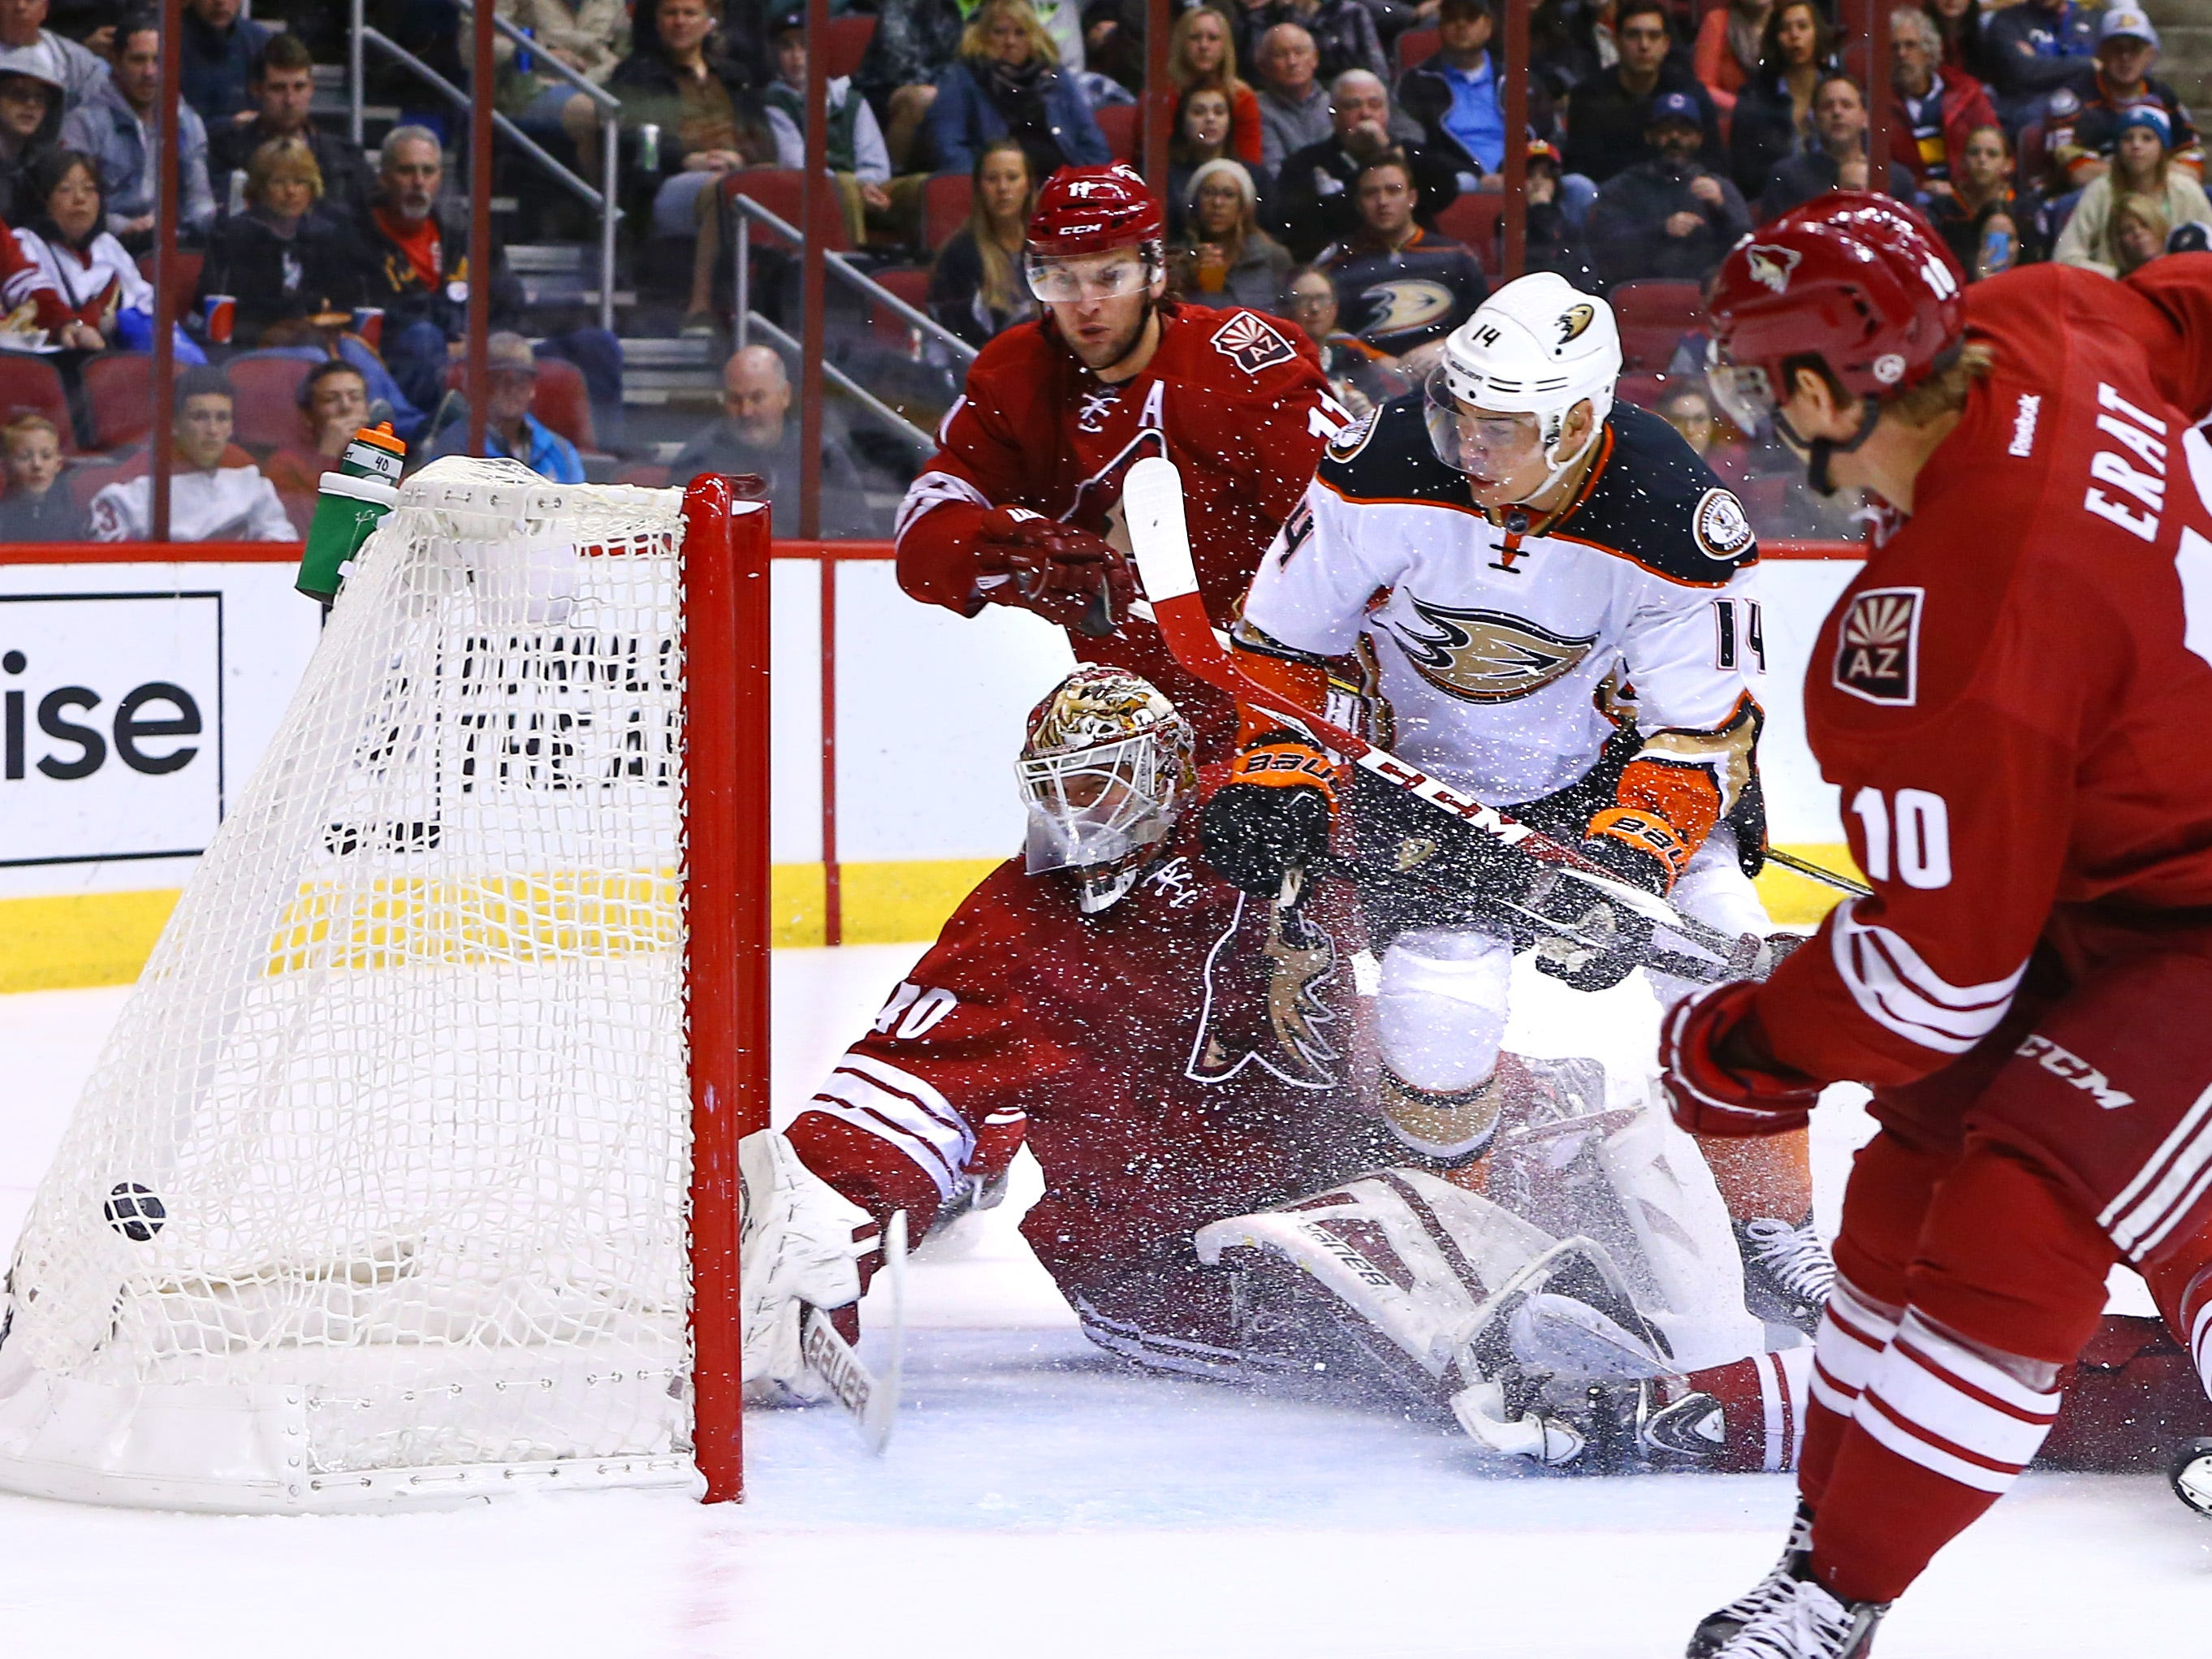 Dec 27, 2014; Glendale, AZ, USA; Anaheim Ducks left wing Rene Bourque (14) scores a goal against Arizona Coyotes goalie Devan Dubnyk (40) in the first period at Gila River Arena. Mandatory Credit: Mark J. Rebilas-USA TODAY Sports